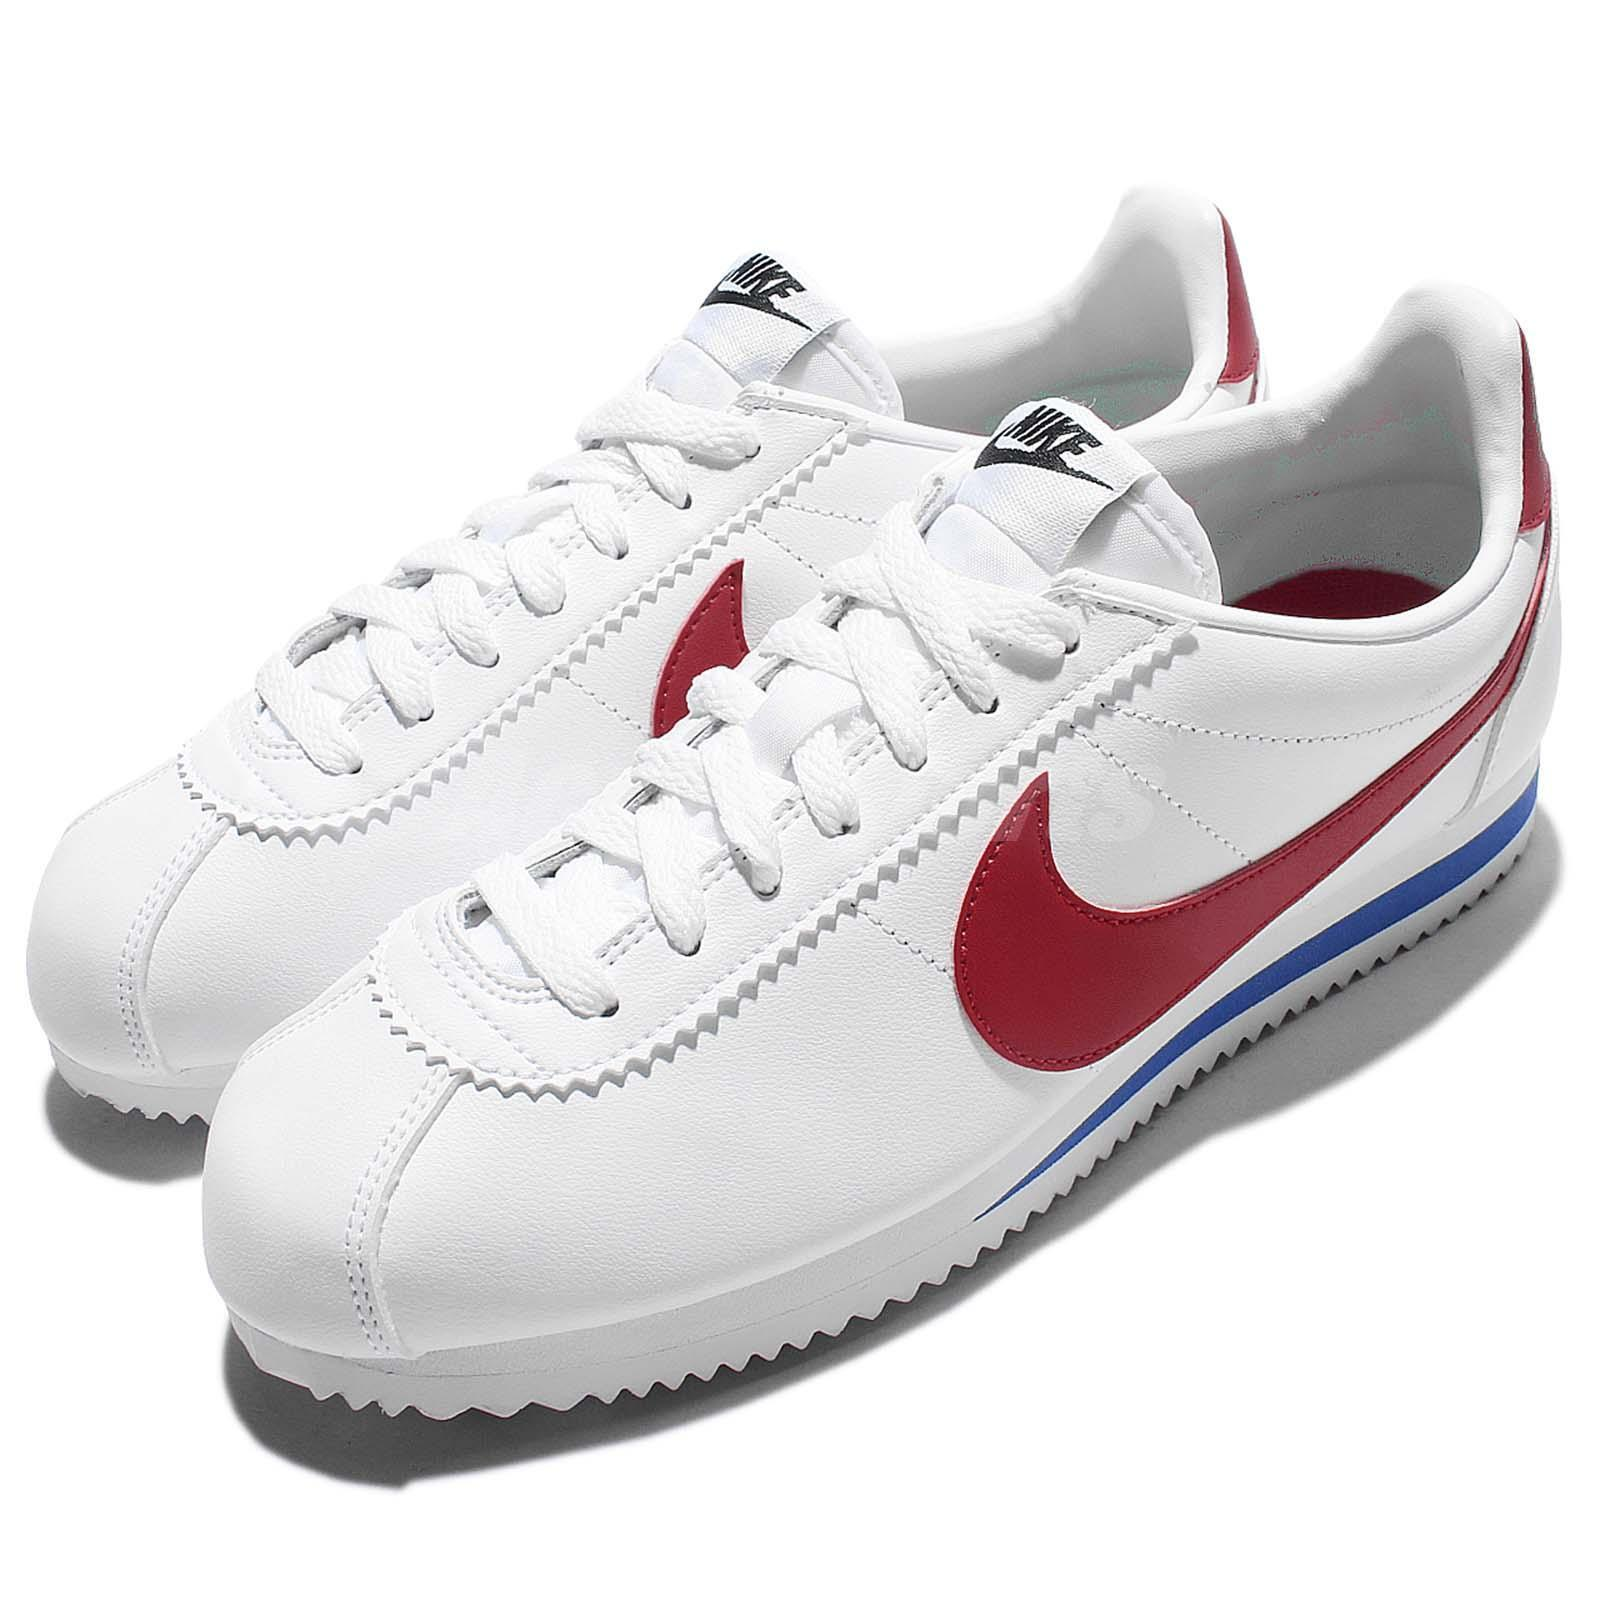 Wmns Nike Classic Cortez Leather OG Forrest Gum Blanc Rouge Women Chaussures 807471-103